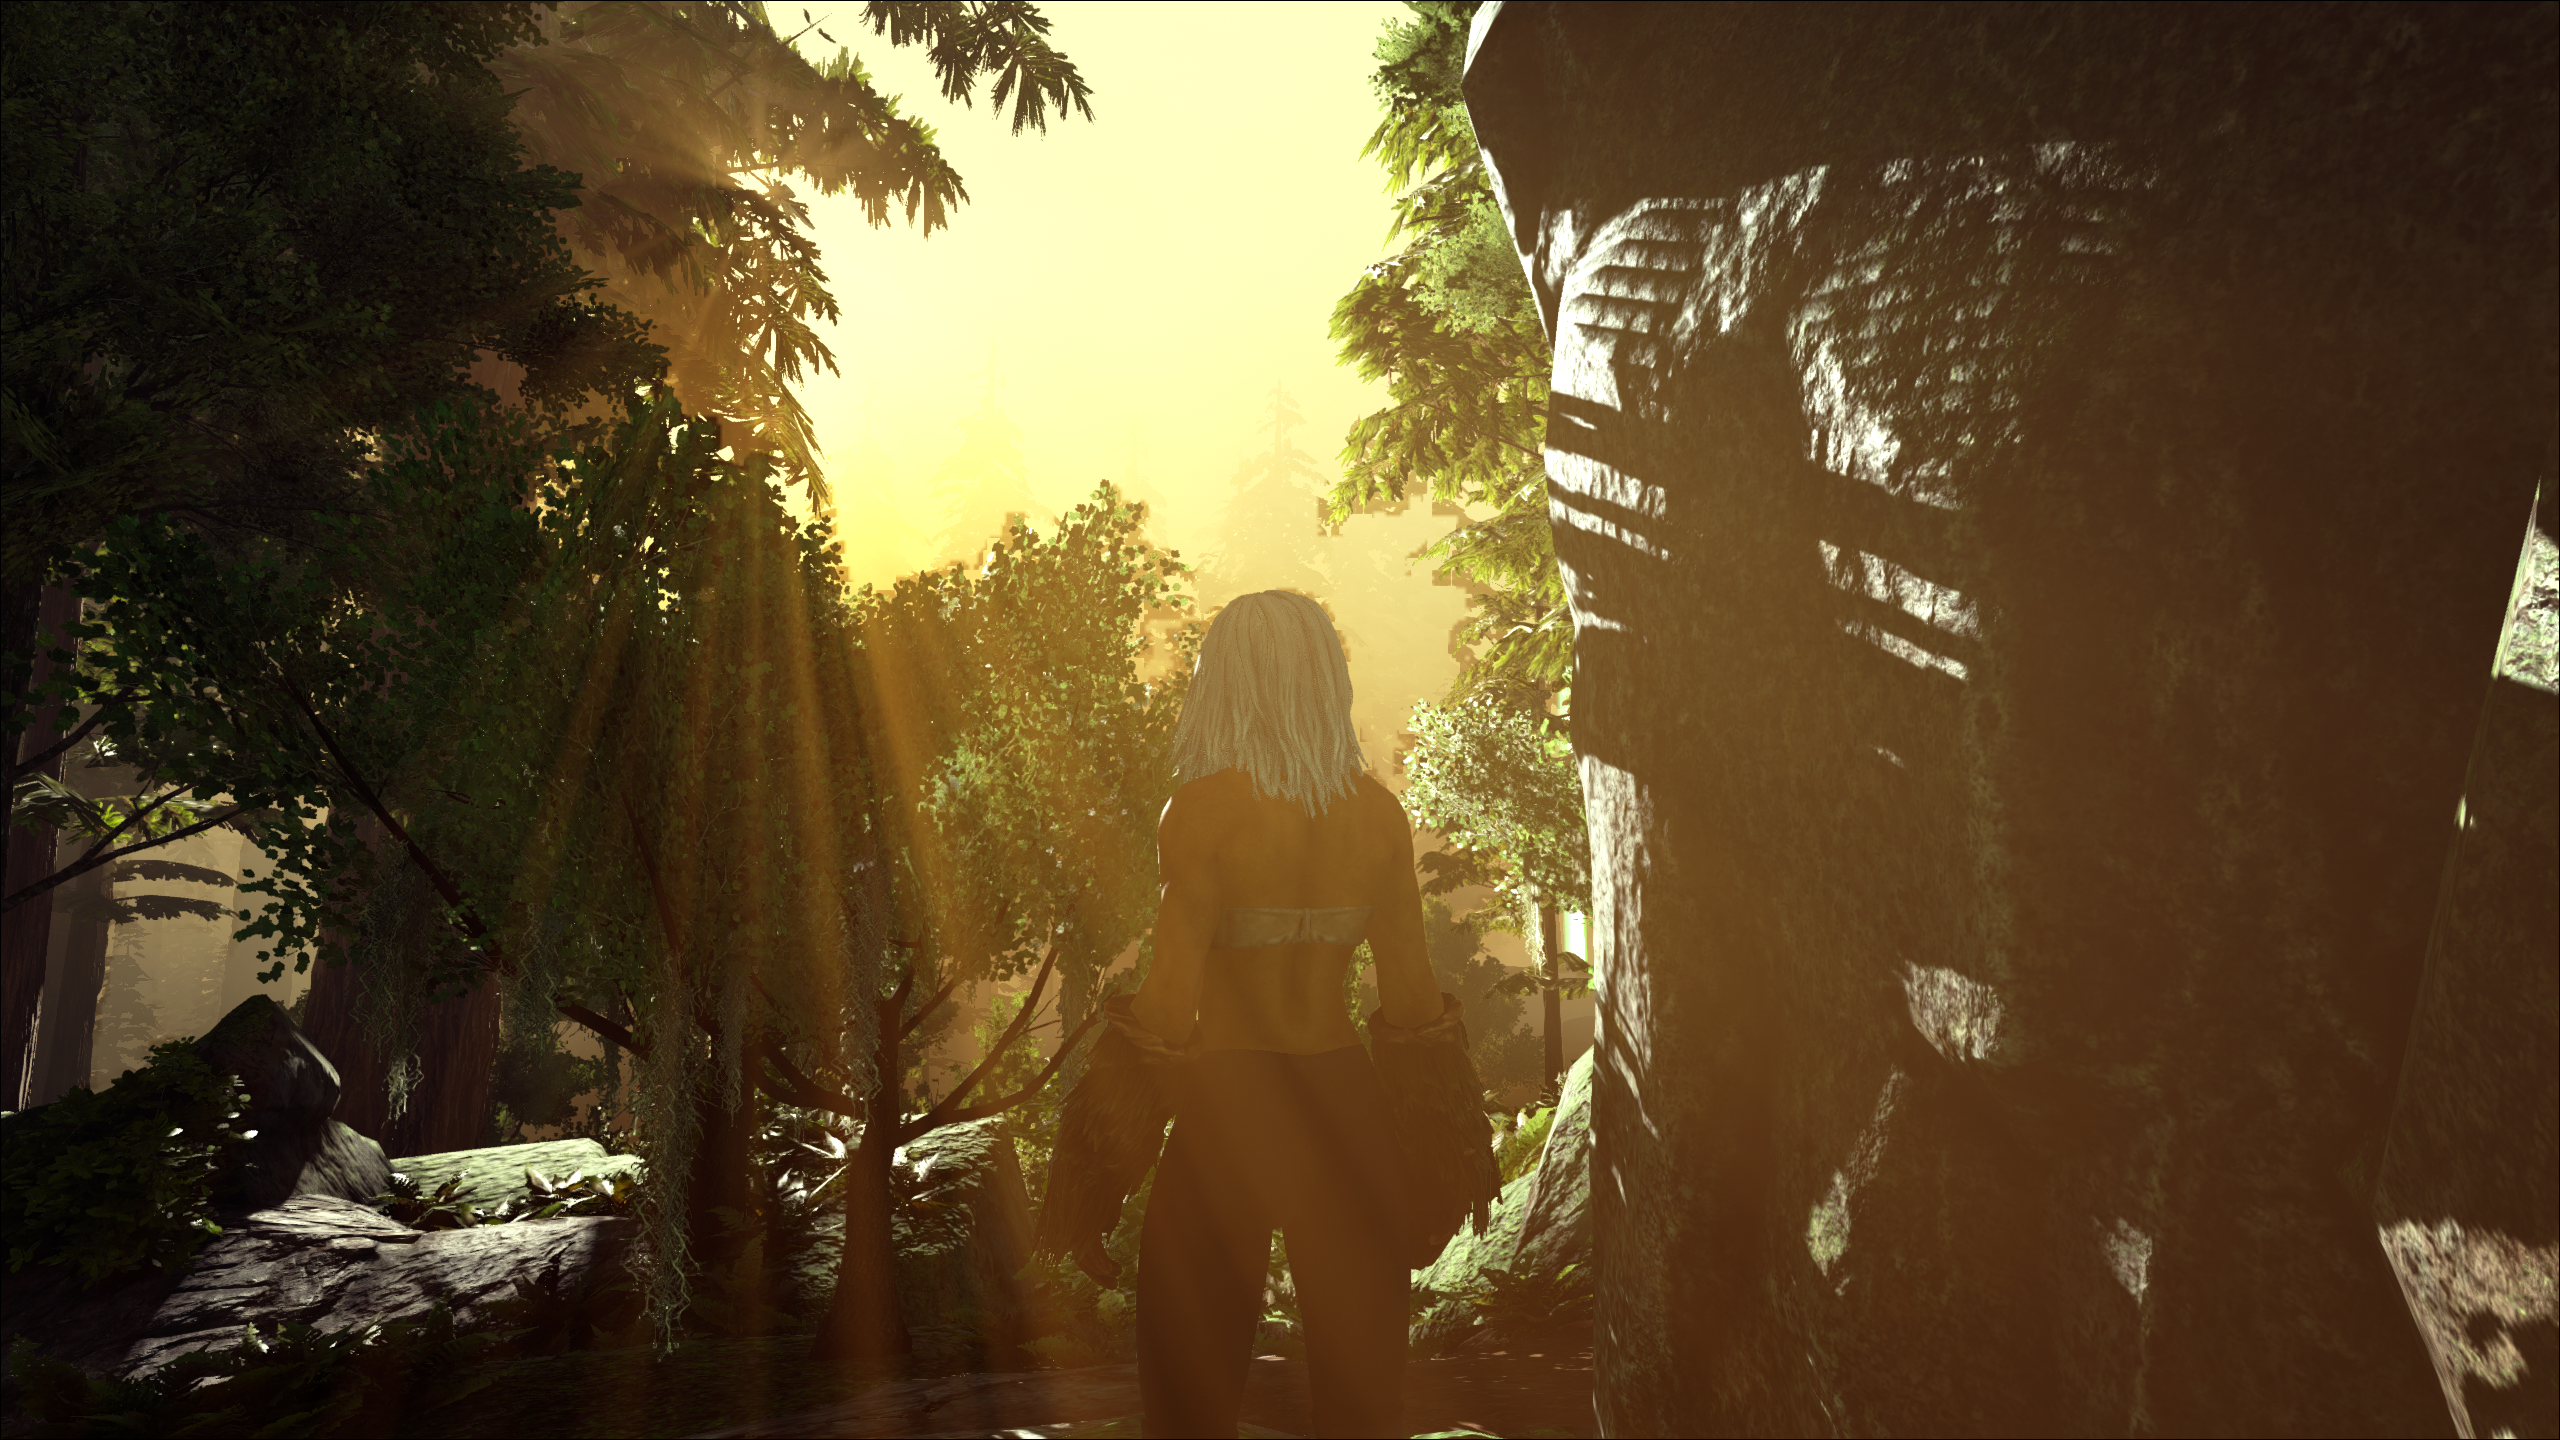 Looking out from the Redwood Cave on Ark: The Island